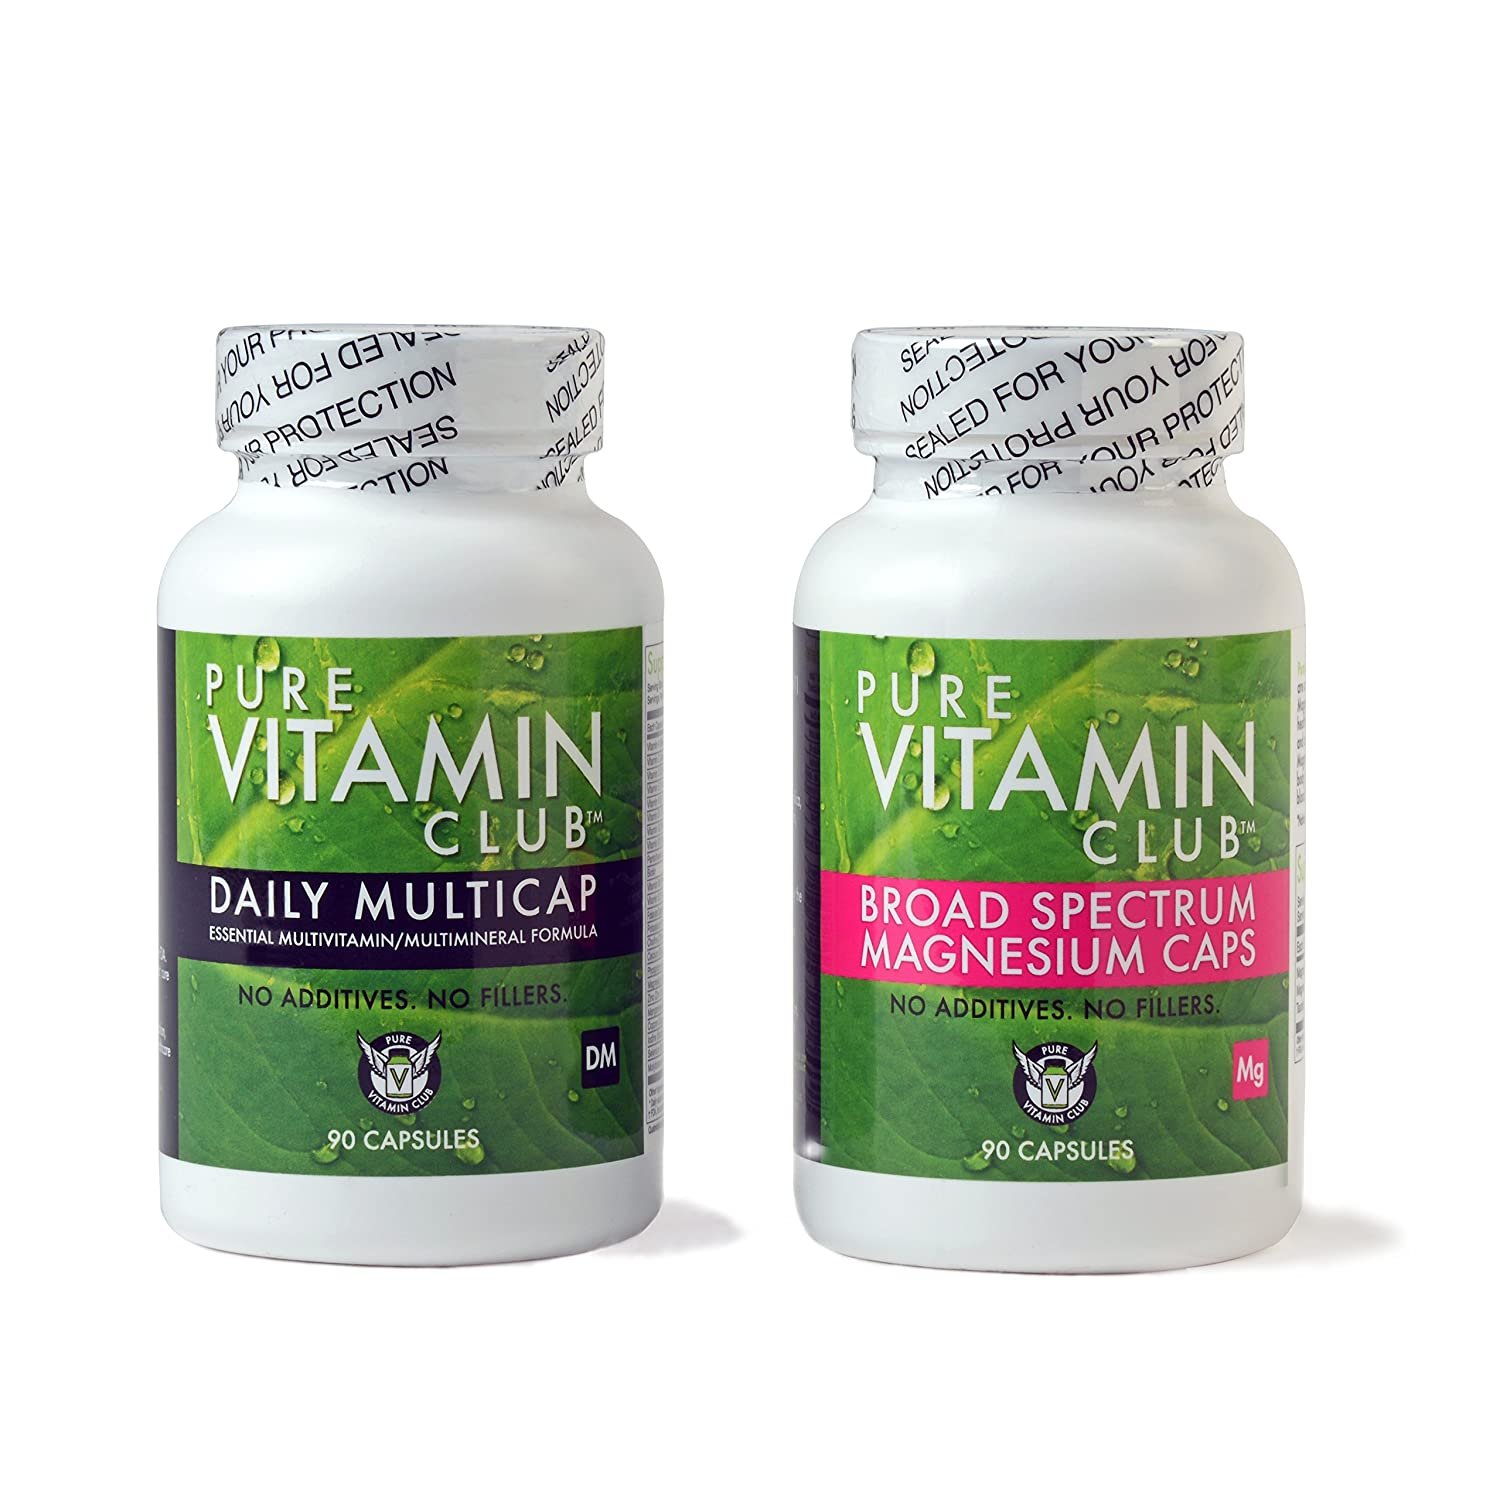 Daily Multivitamins and Magnesium Cap Bundle – NO Fillers, NO Binders, NO Added Ingredients. Perfect Blend of Vitamins and Minerals Plus Broad Spectrum Magnesium Caps with Blend of 4 Magnesium Forms.